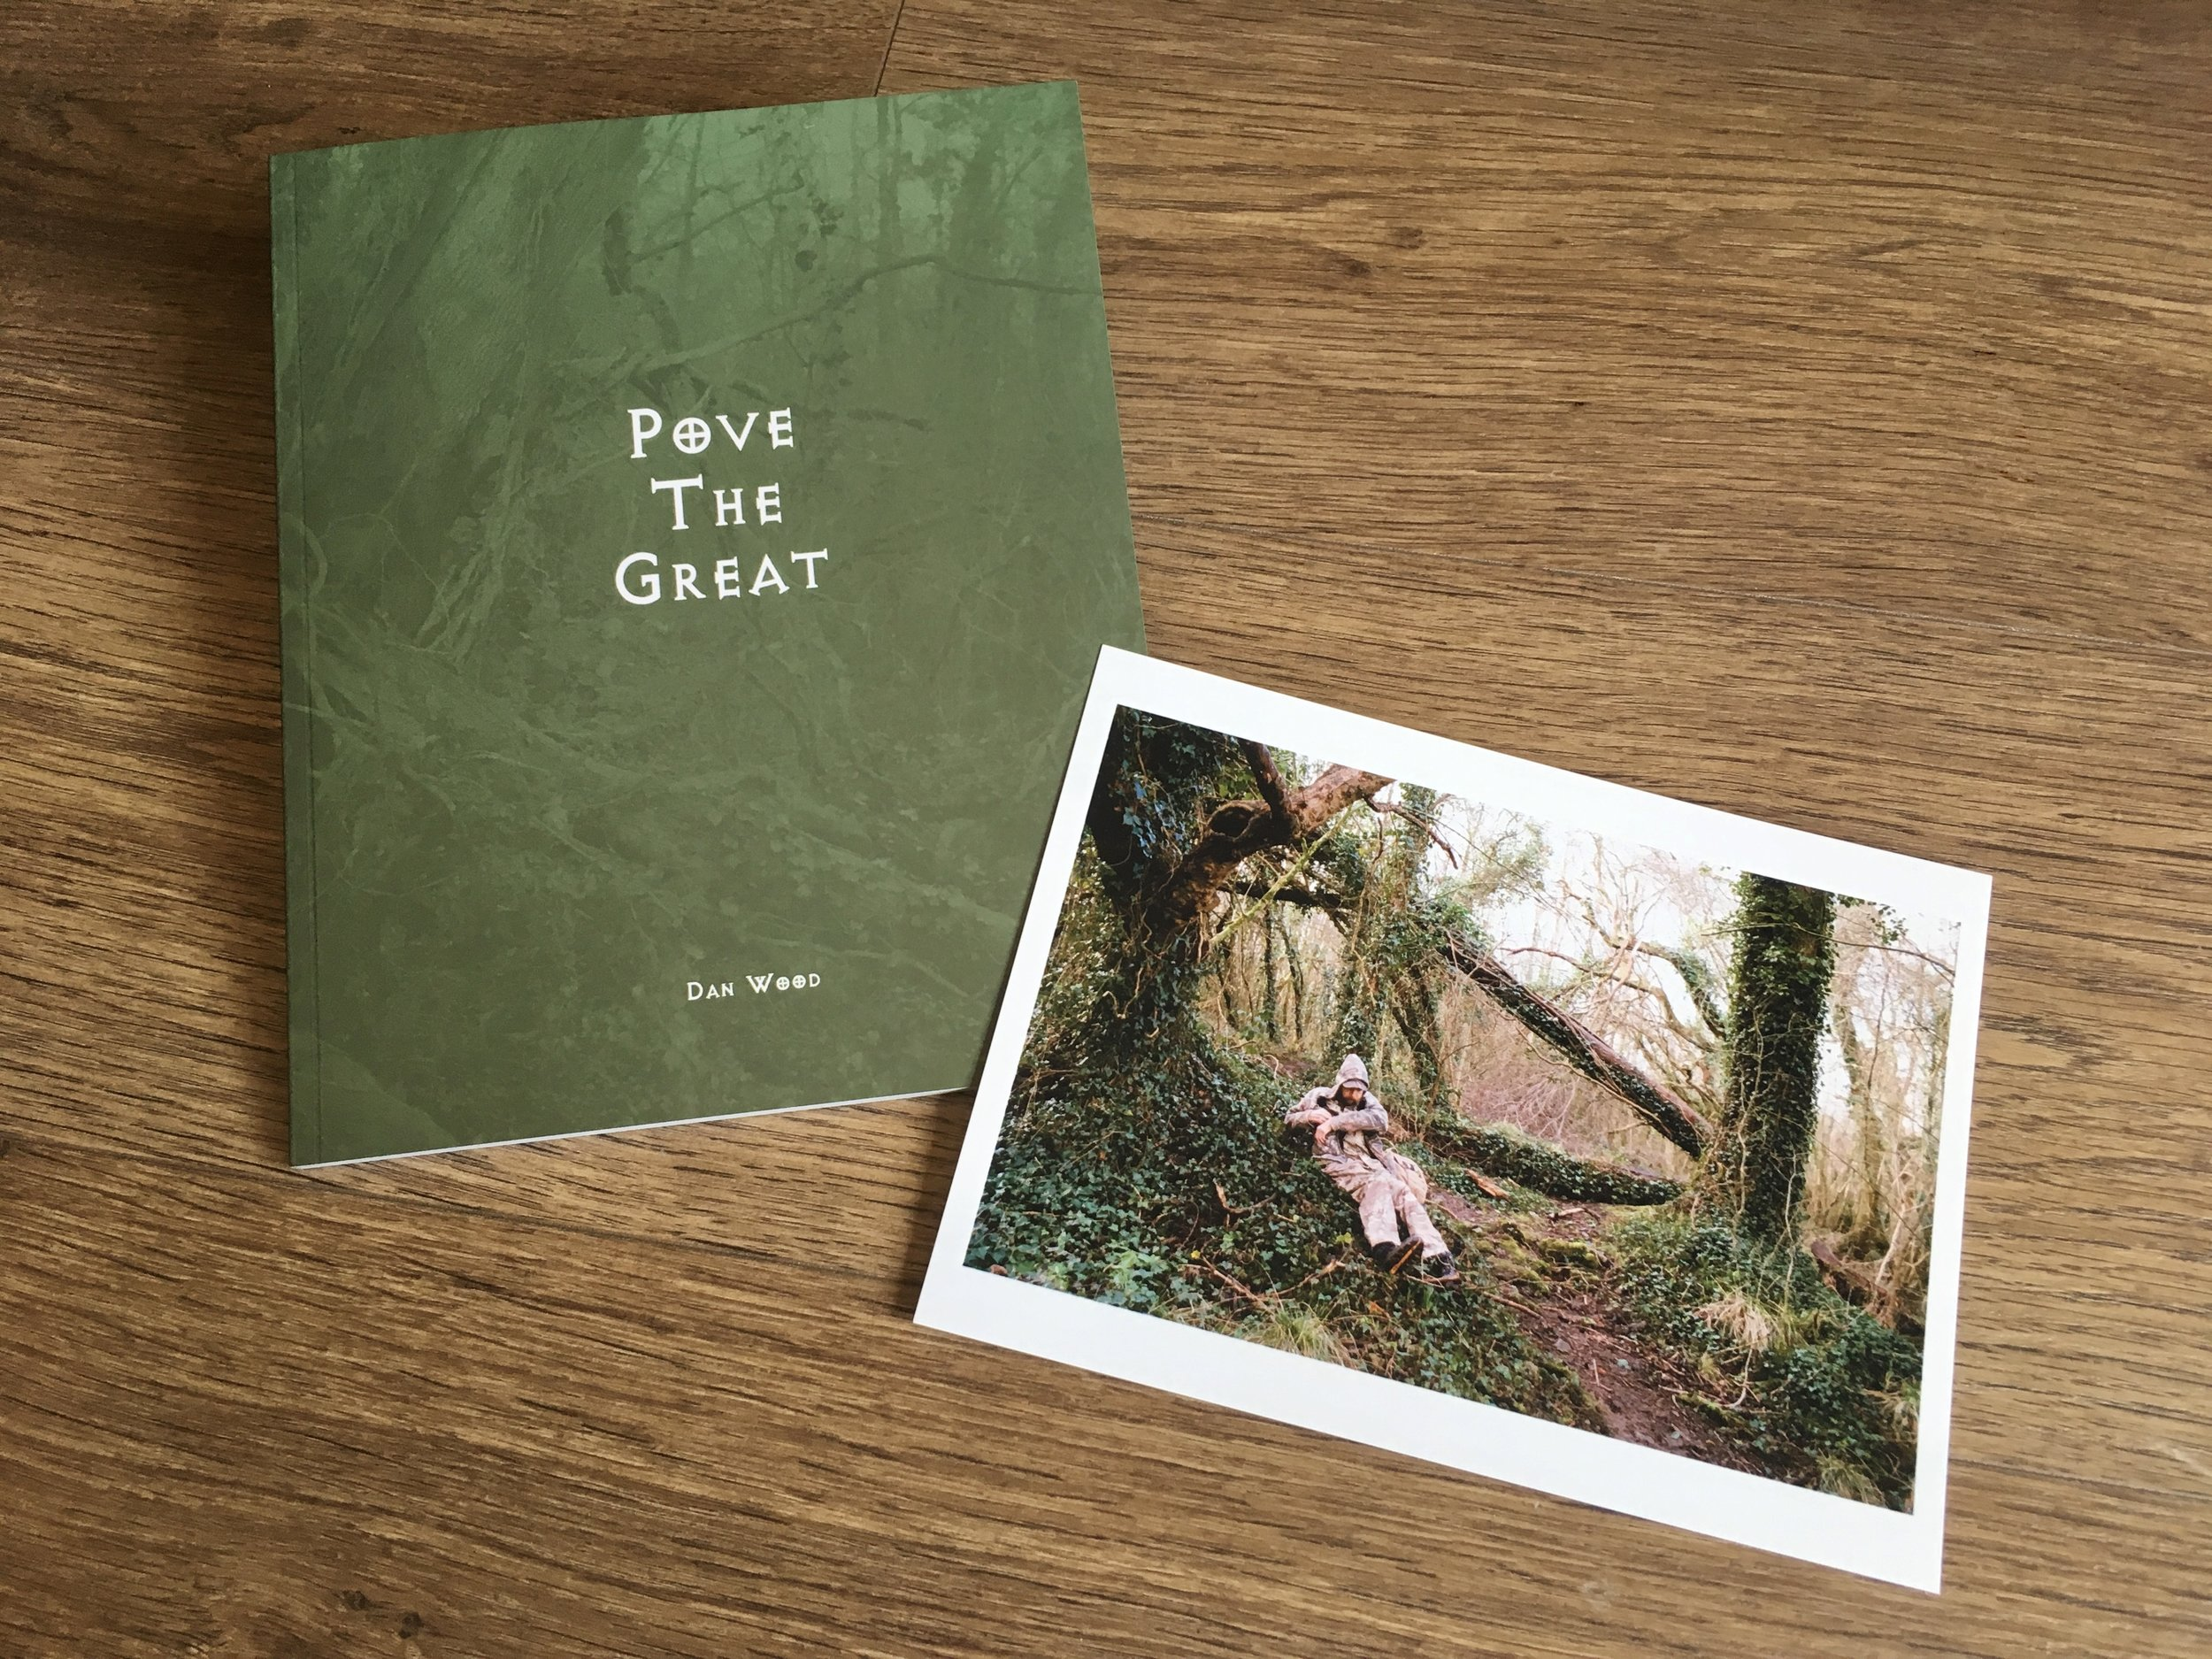 Pove the Great, with Print. Self-Published, 2019   Ltd Ed. 100 Copies Only  Available   HERE